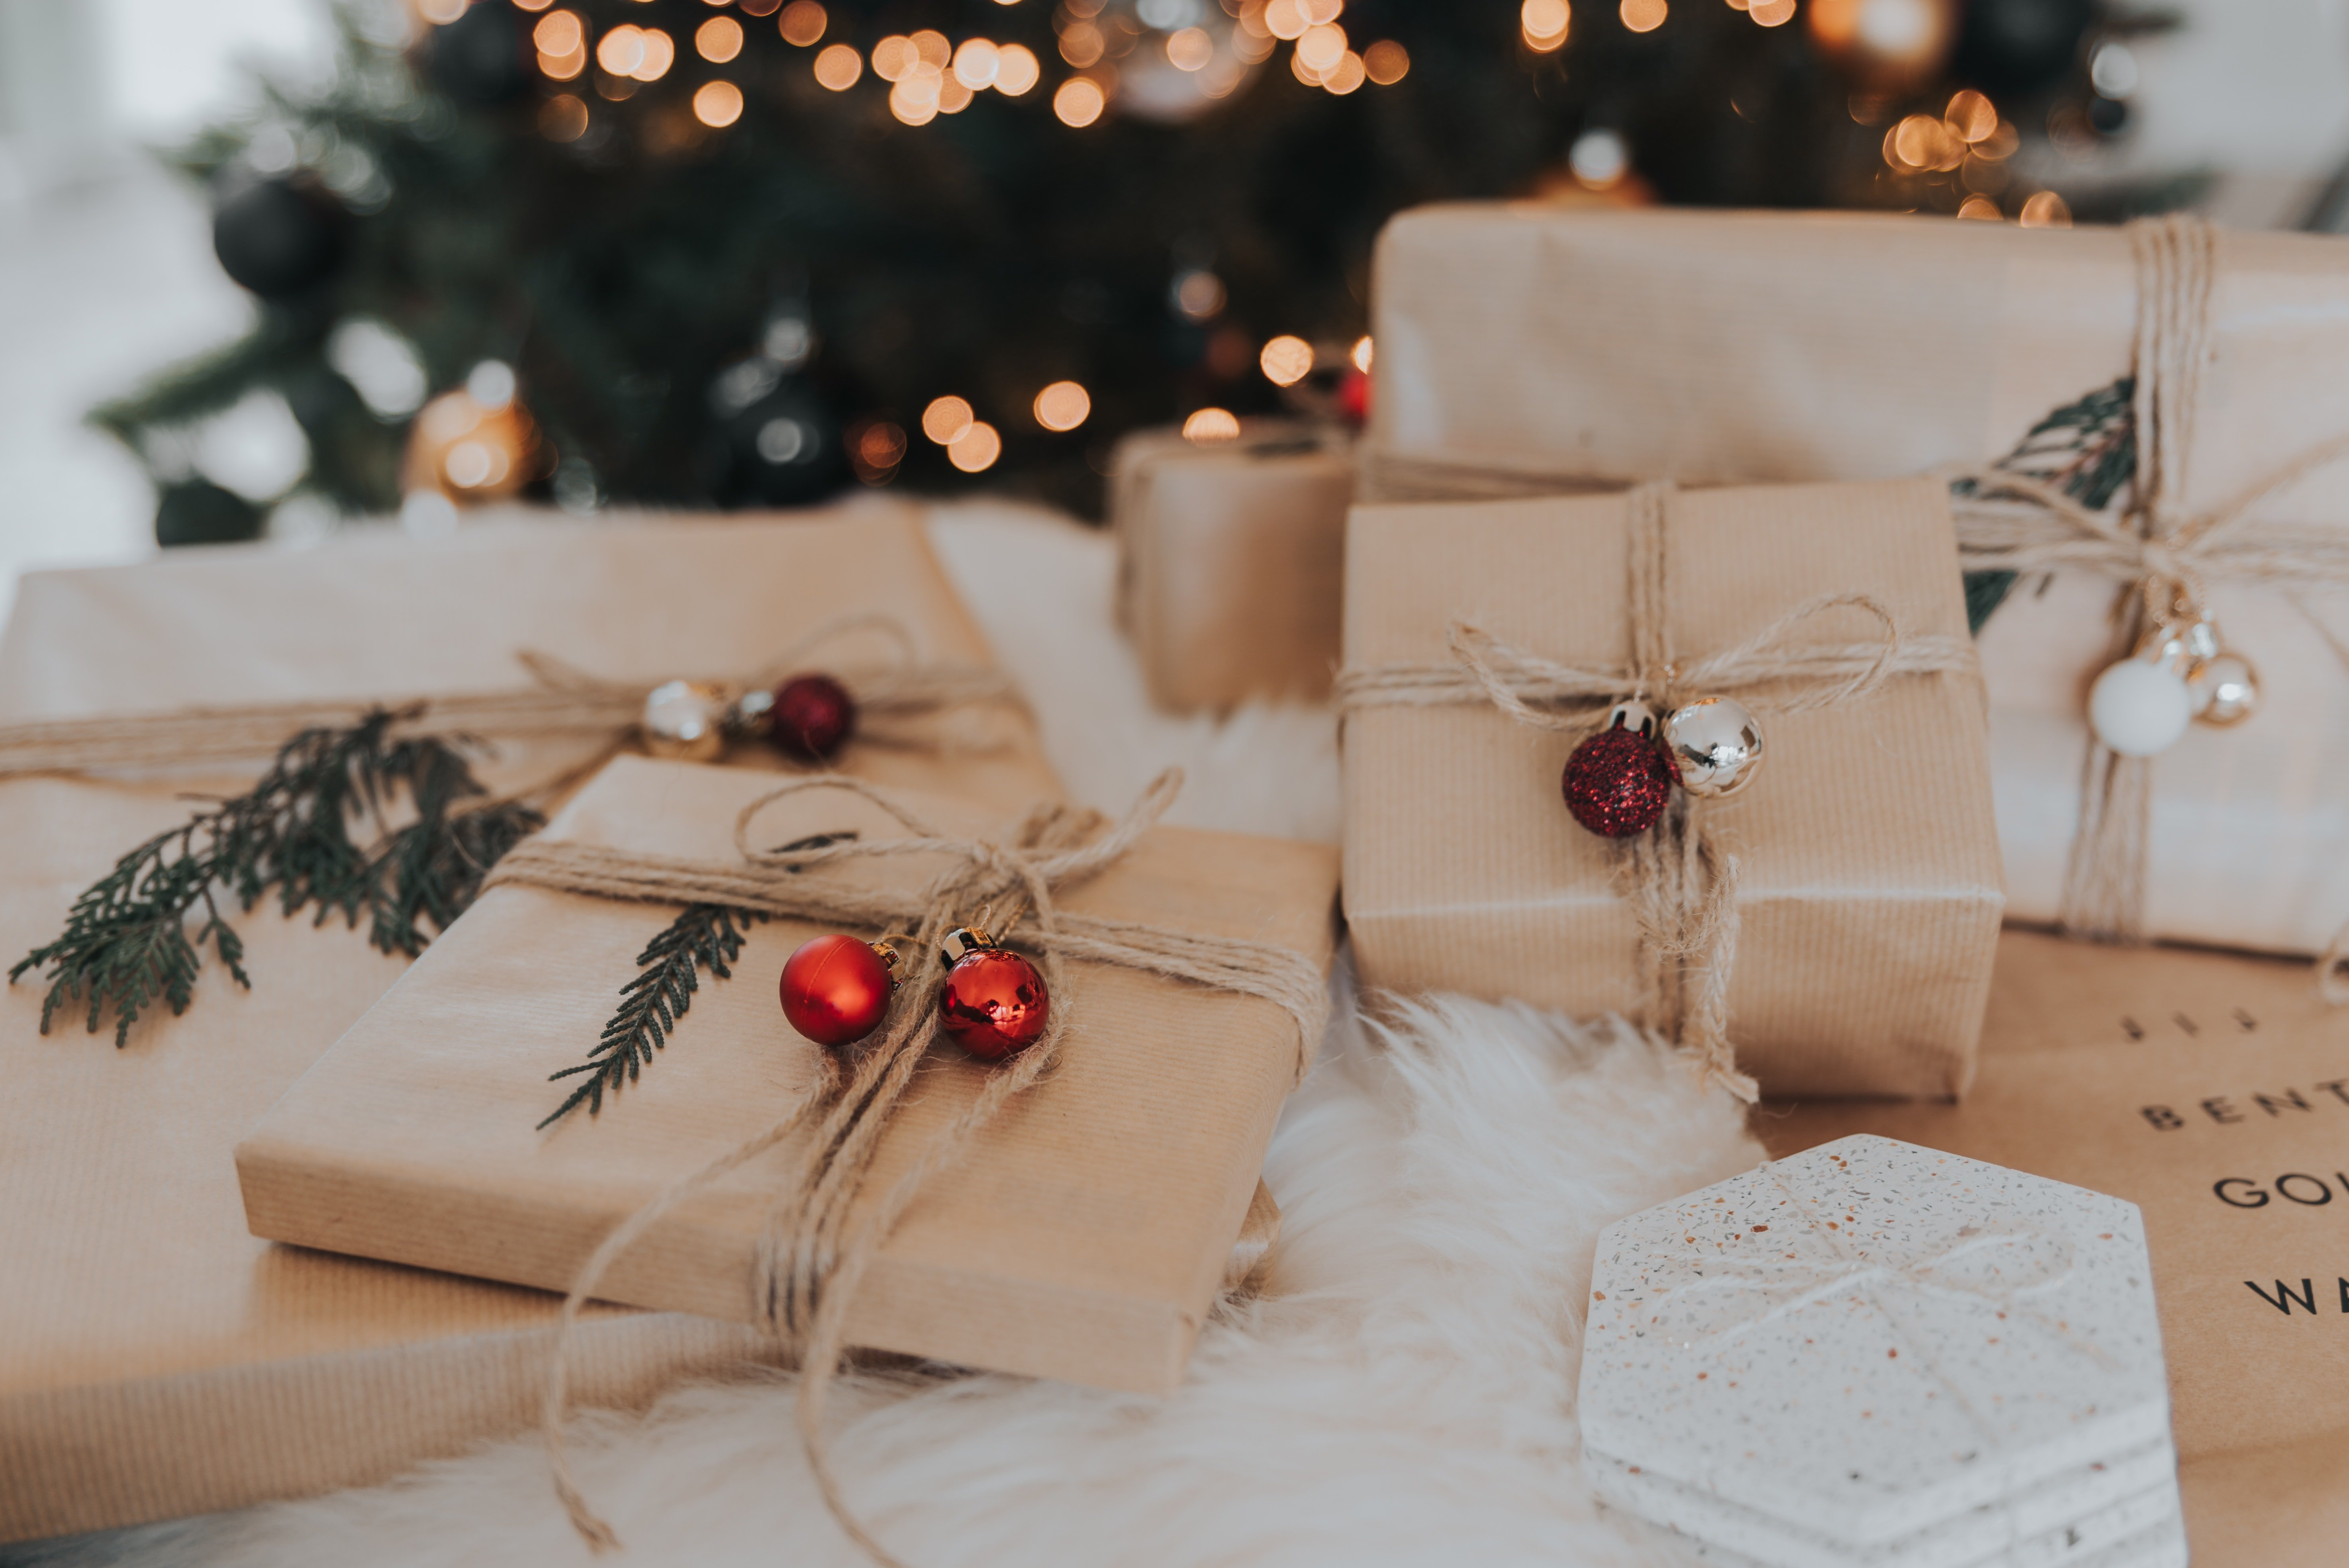 What to gift someone whos been given everything - blog post - Christmas - photo credit Lore Schodts